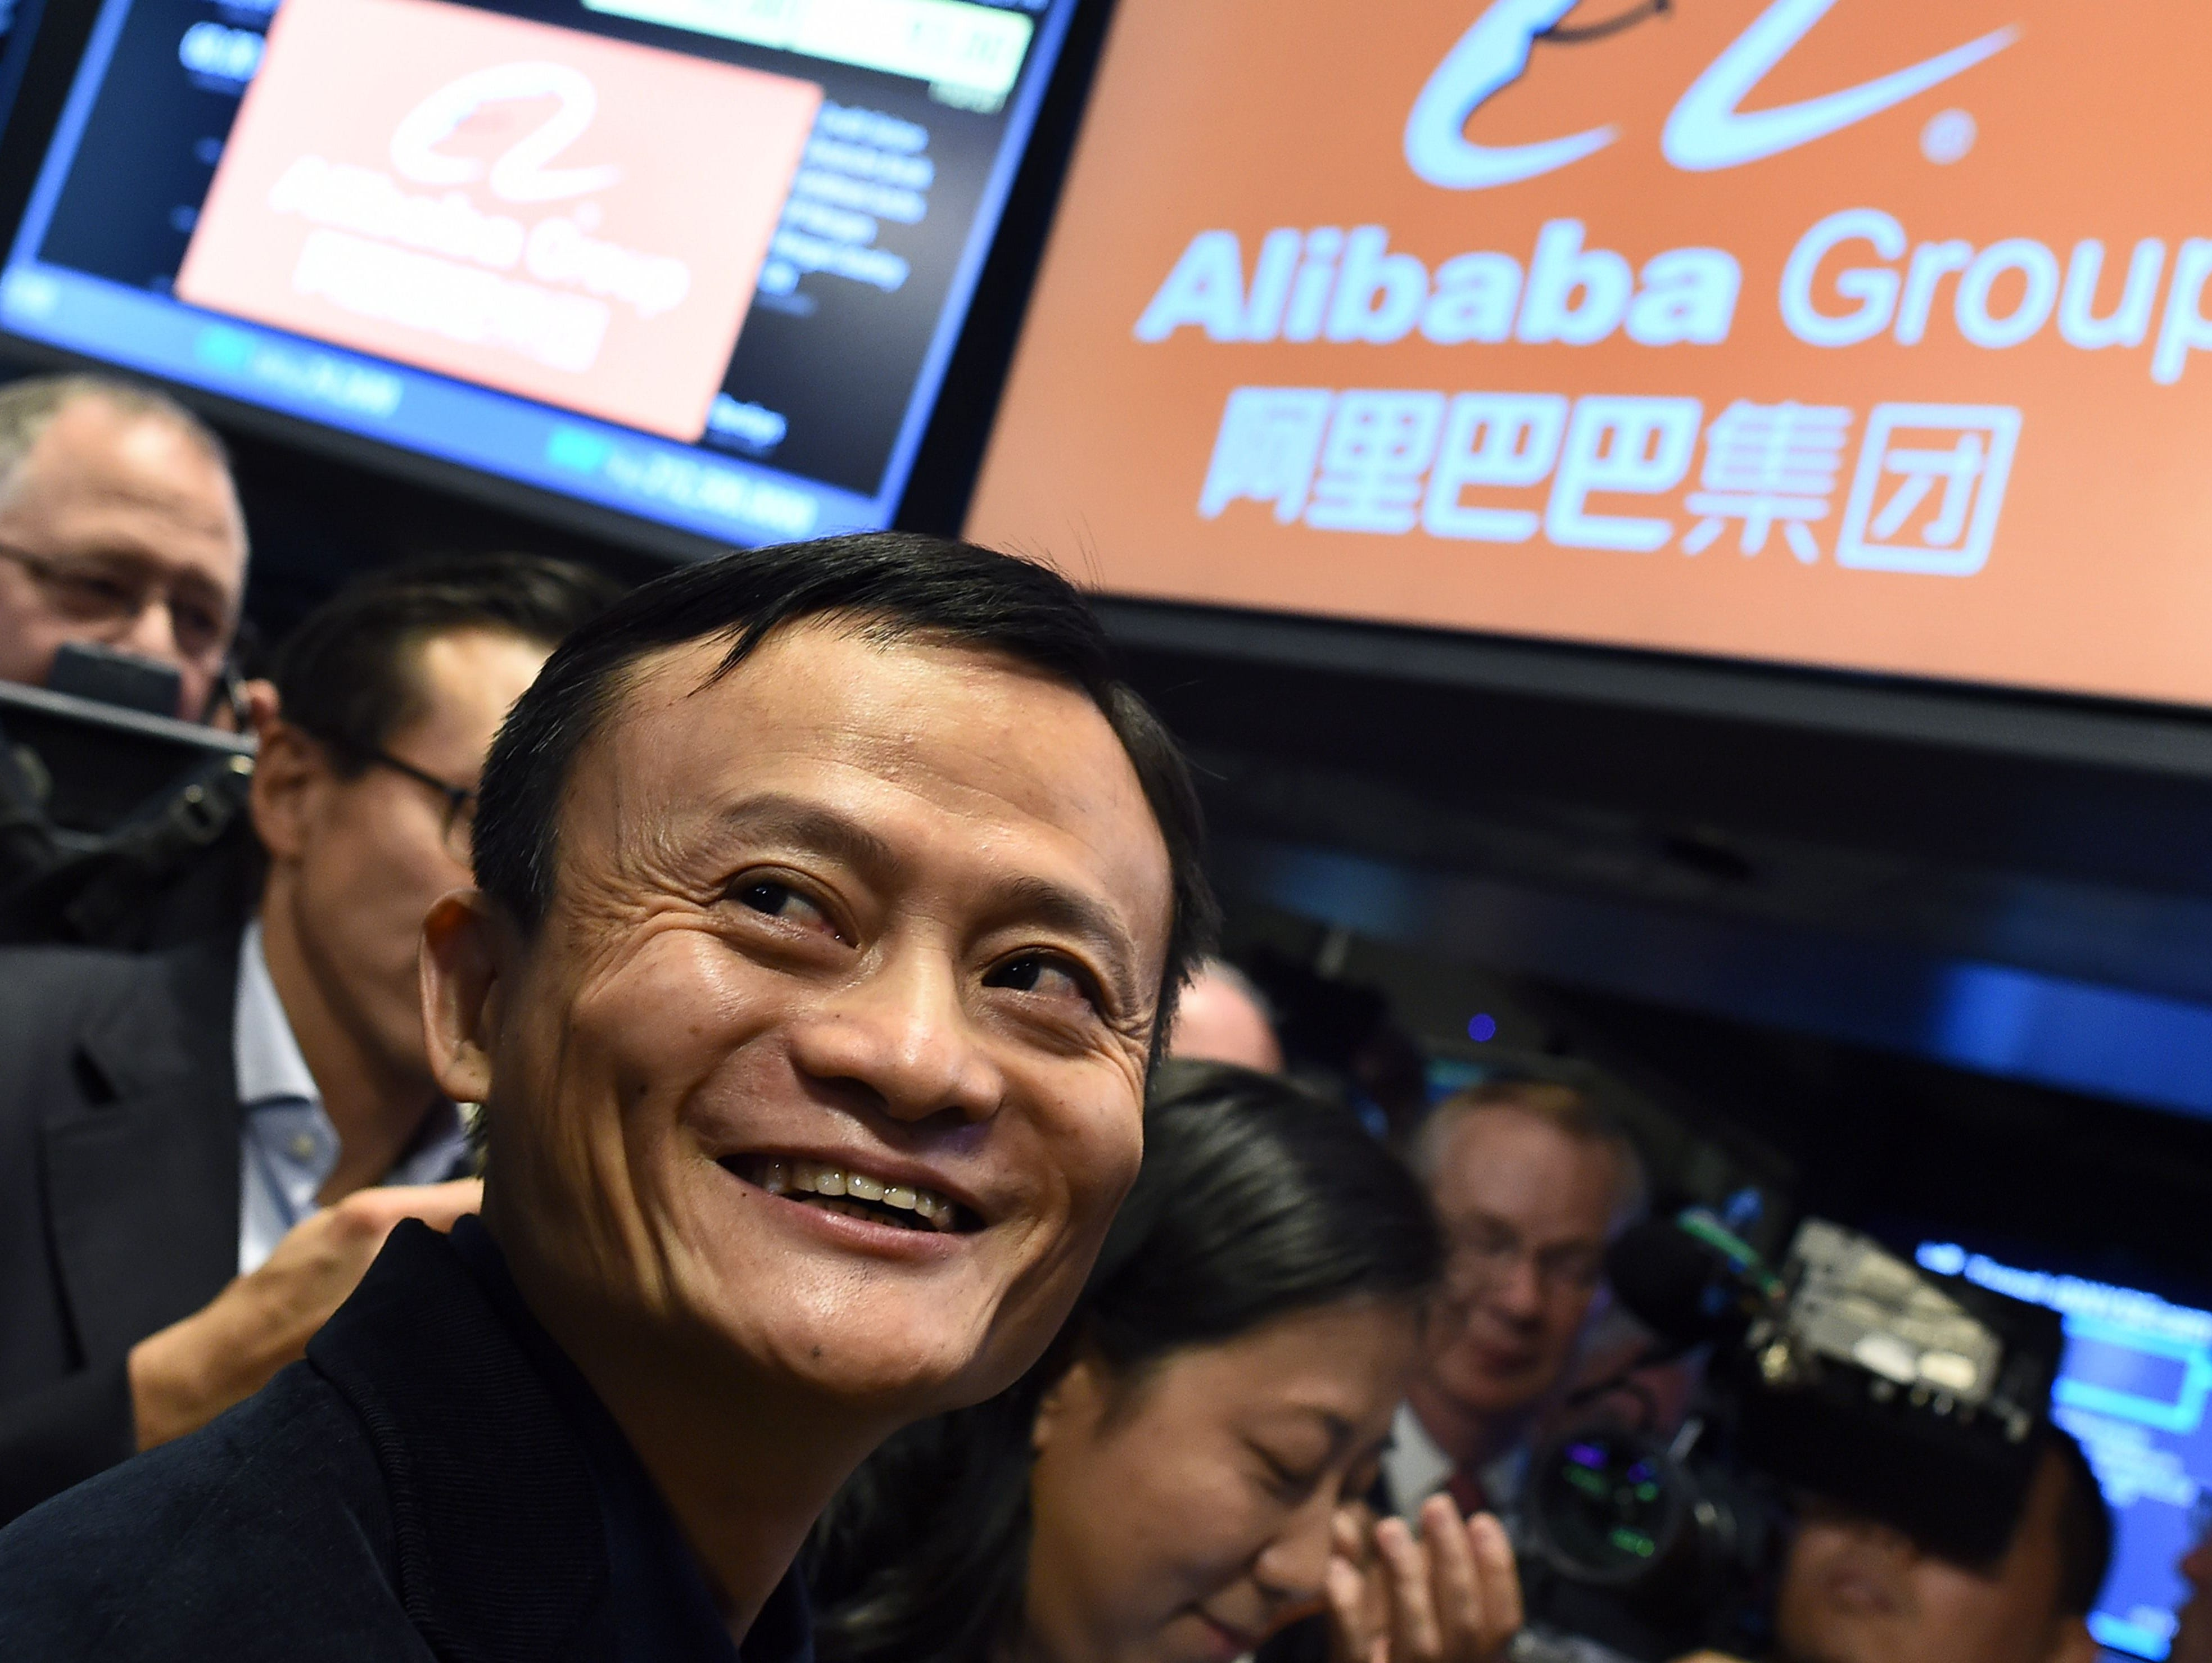 Chinese online retail giant Alibaba founder Jack Ma waits for the trading to open on the floor at the New York Stock Exchange in New York on Sept. 19, 2014.